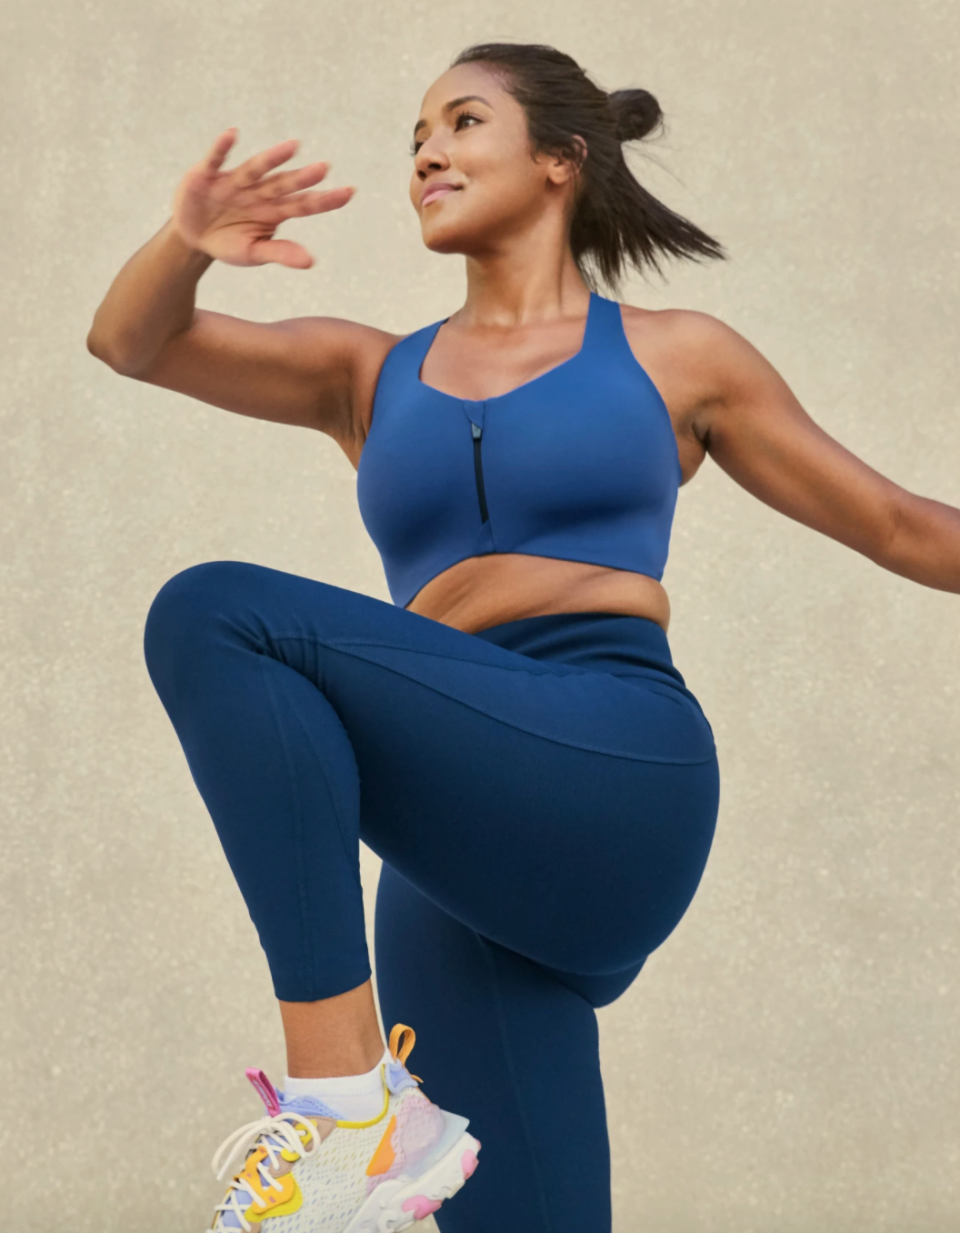 The Catalyst Front Zip Sports Bra features wireless support - perfect for larger chested women.